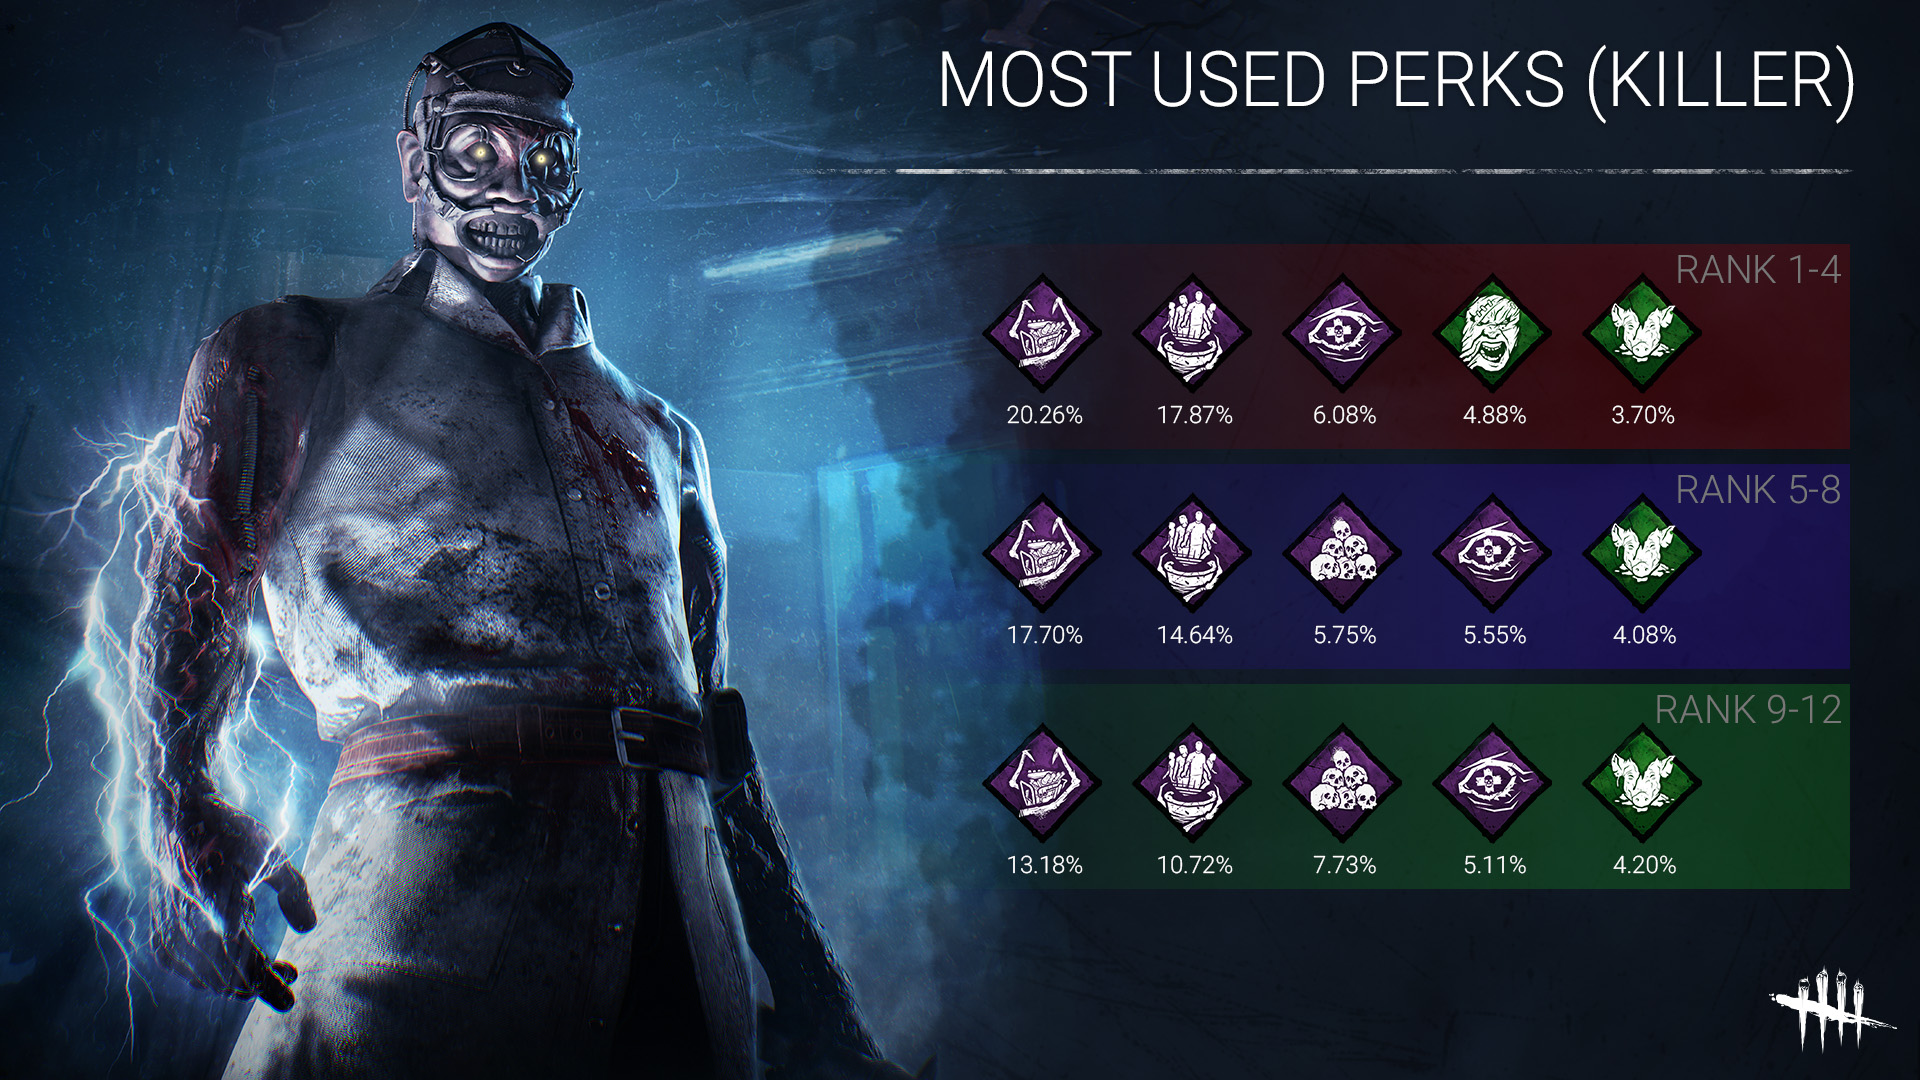 MOST_USED_PERKS_KILLER.jpg